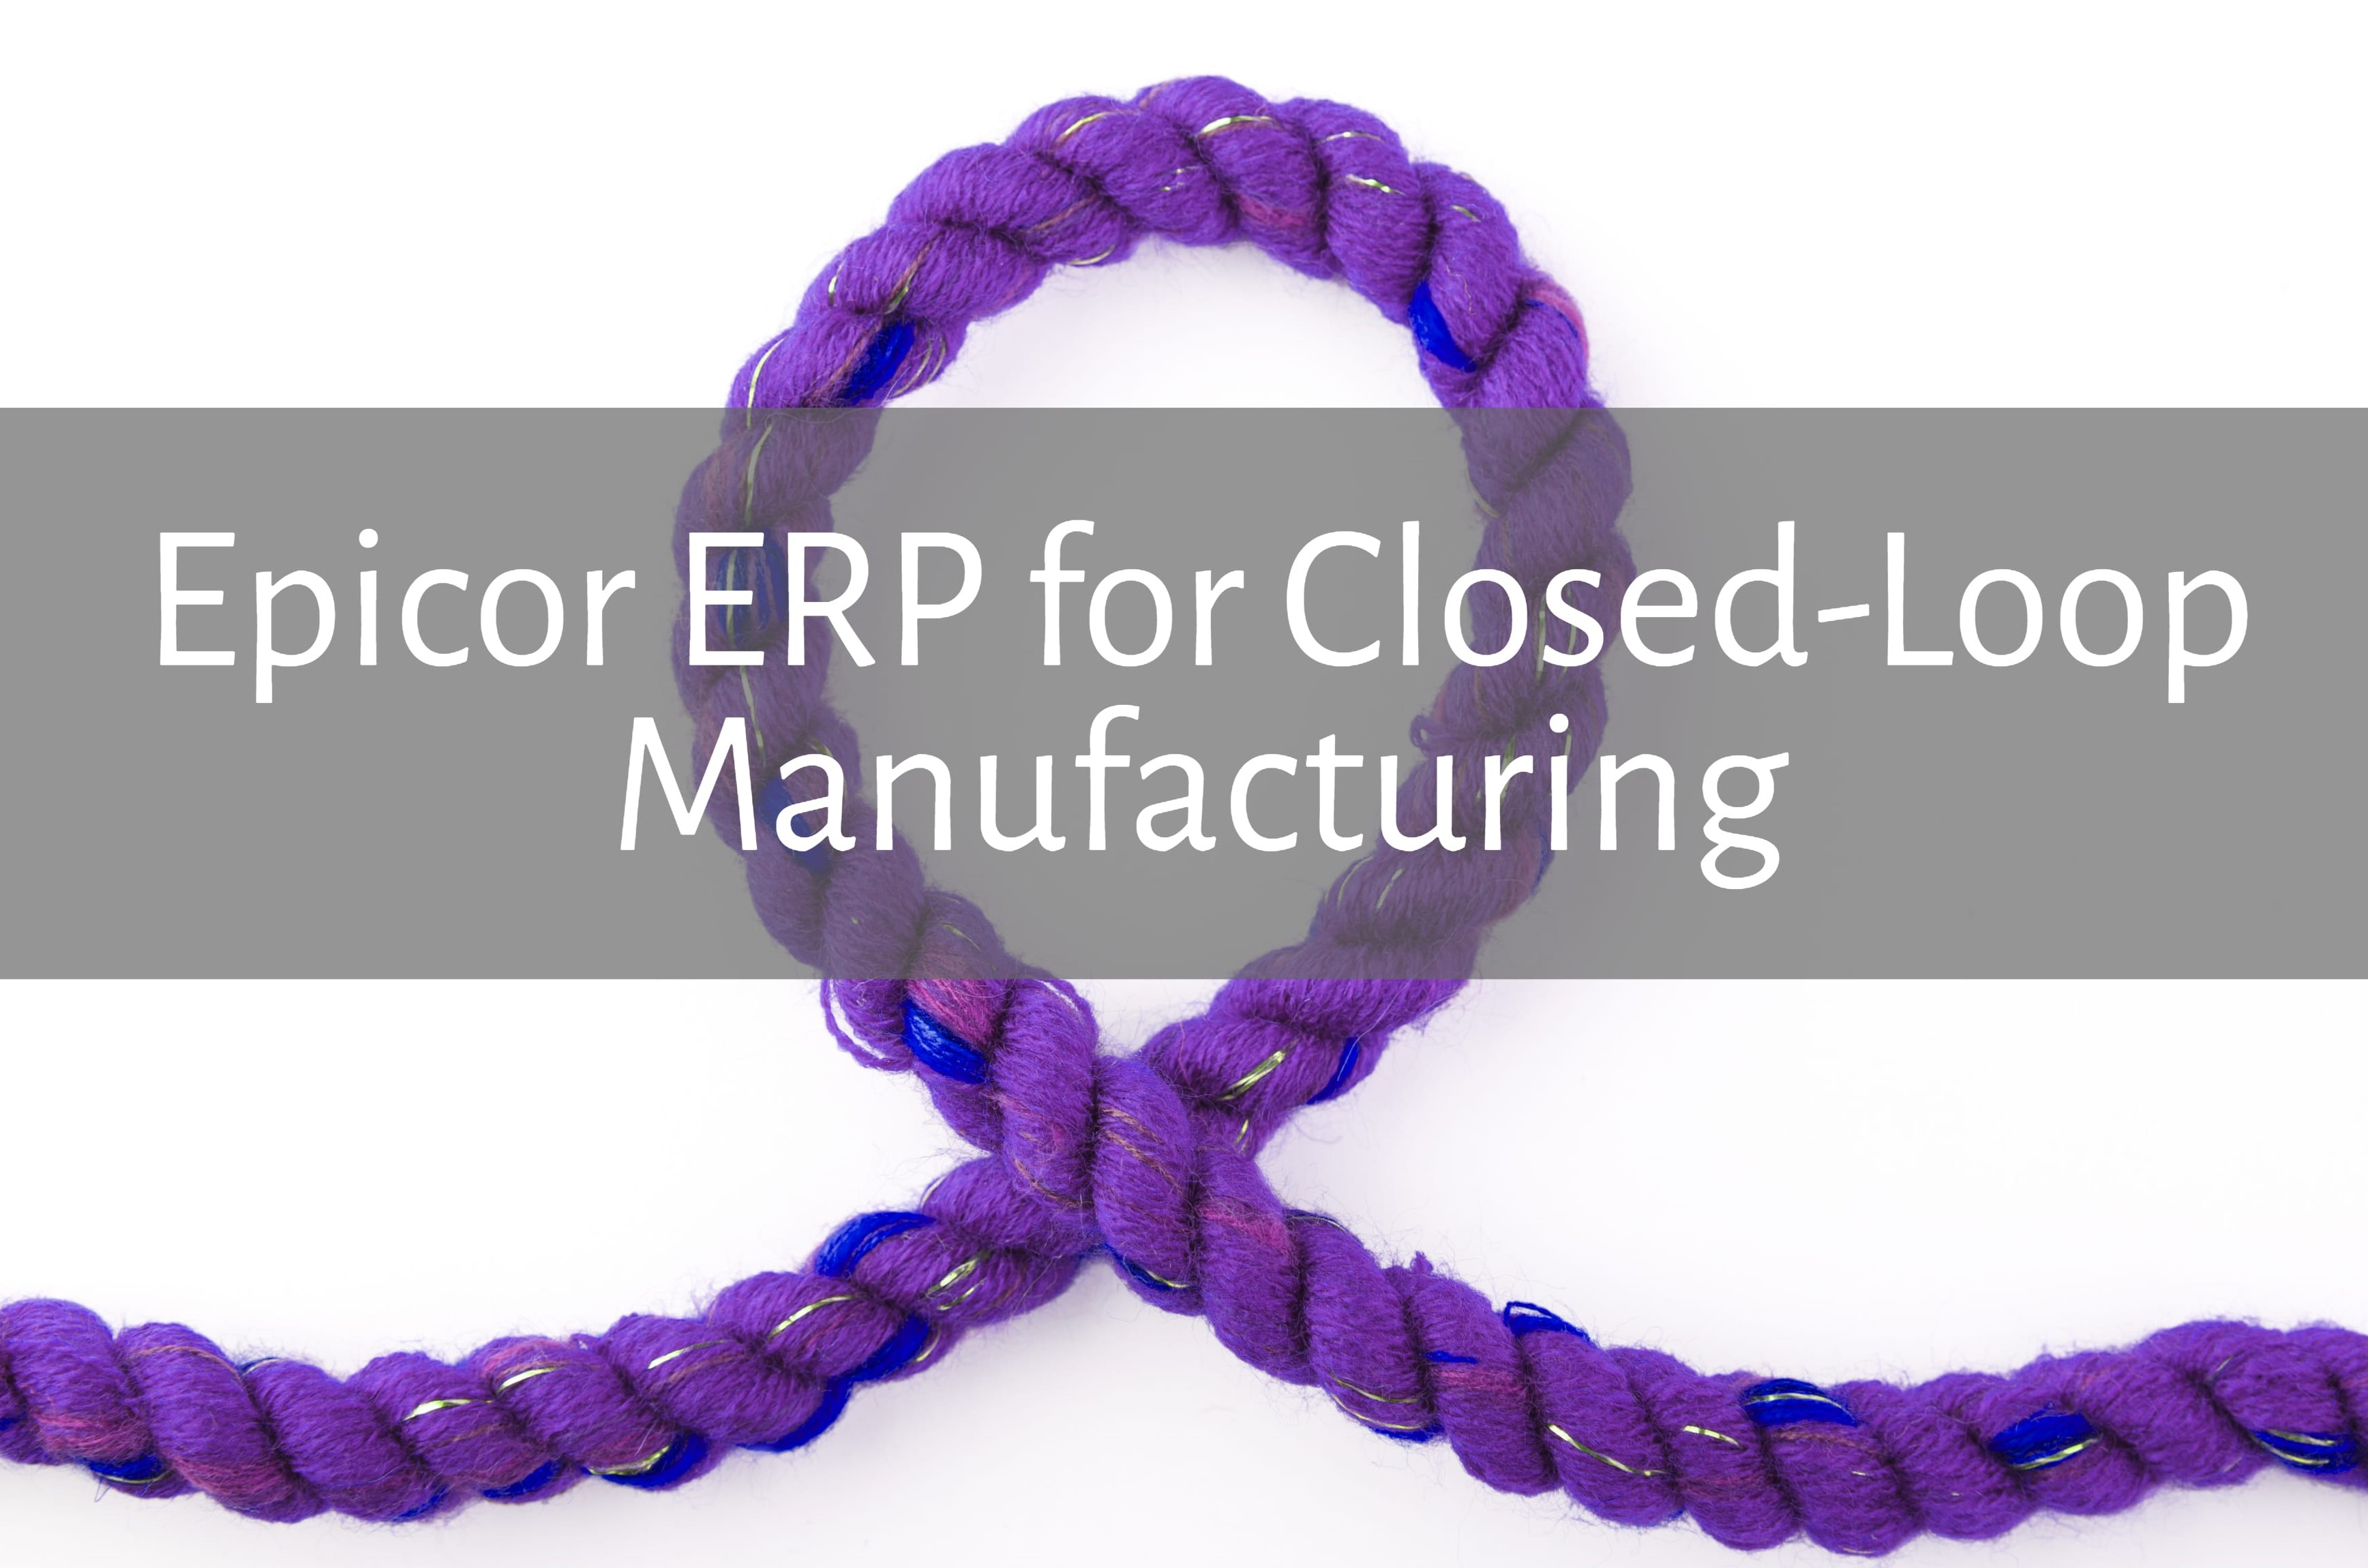 Epicor ERP Powers Closed-Loop Manufacturing